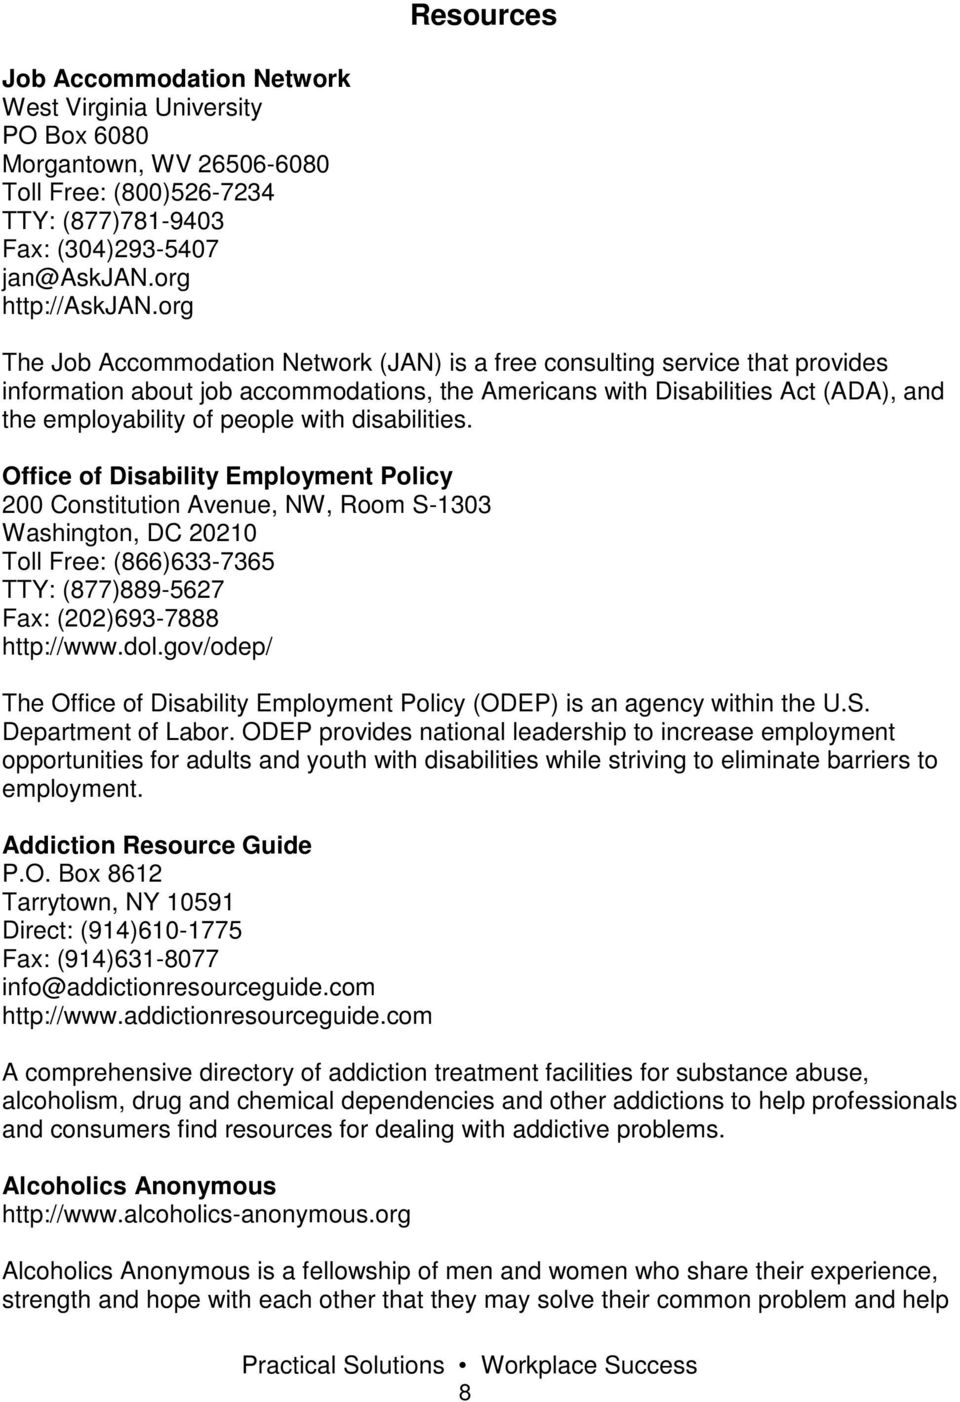 with disabilities. Office of Disability Employment Policy 200 Constitution Avenue, NW, Room S-1303 Washington, DC 20210 Toll Free: (866)633-7365 TTY: (877)889-5627 Fax: (202)693-7888 http://www.dol.